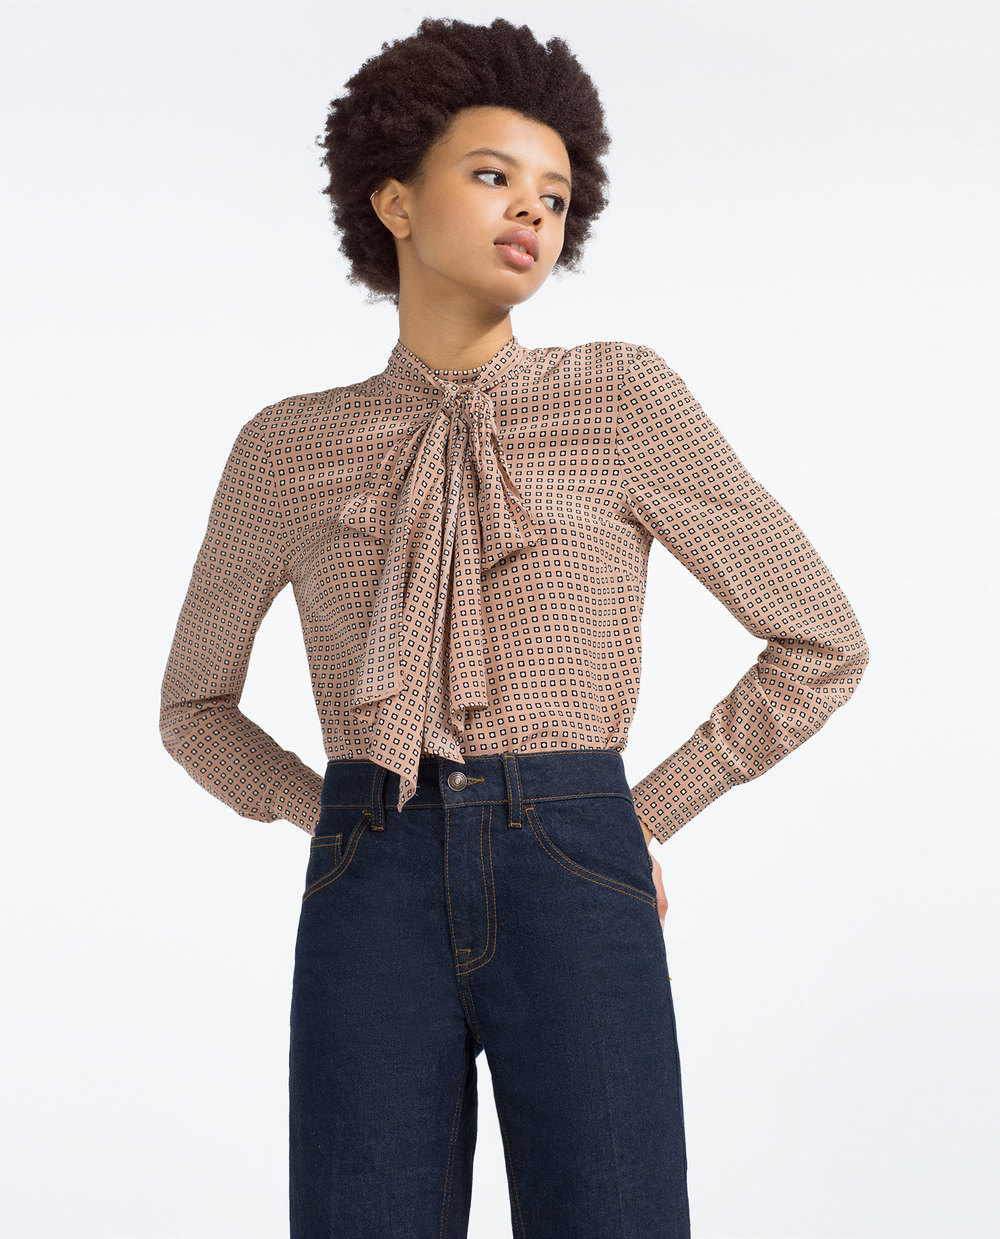 Printed Tie Neck Blouse. Zara. $49.